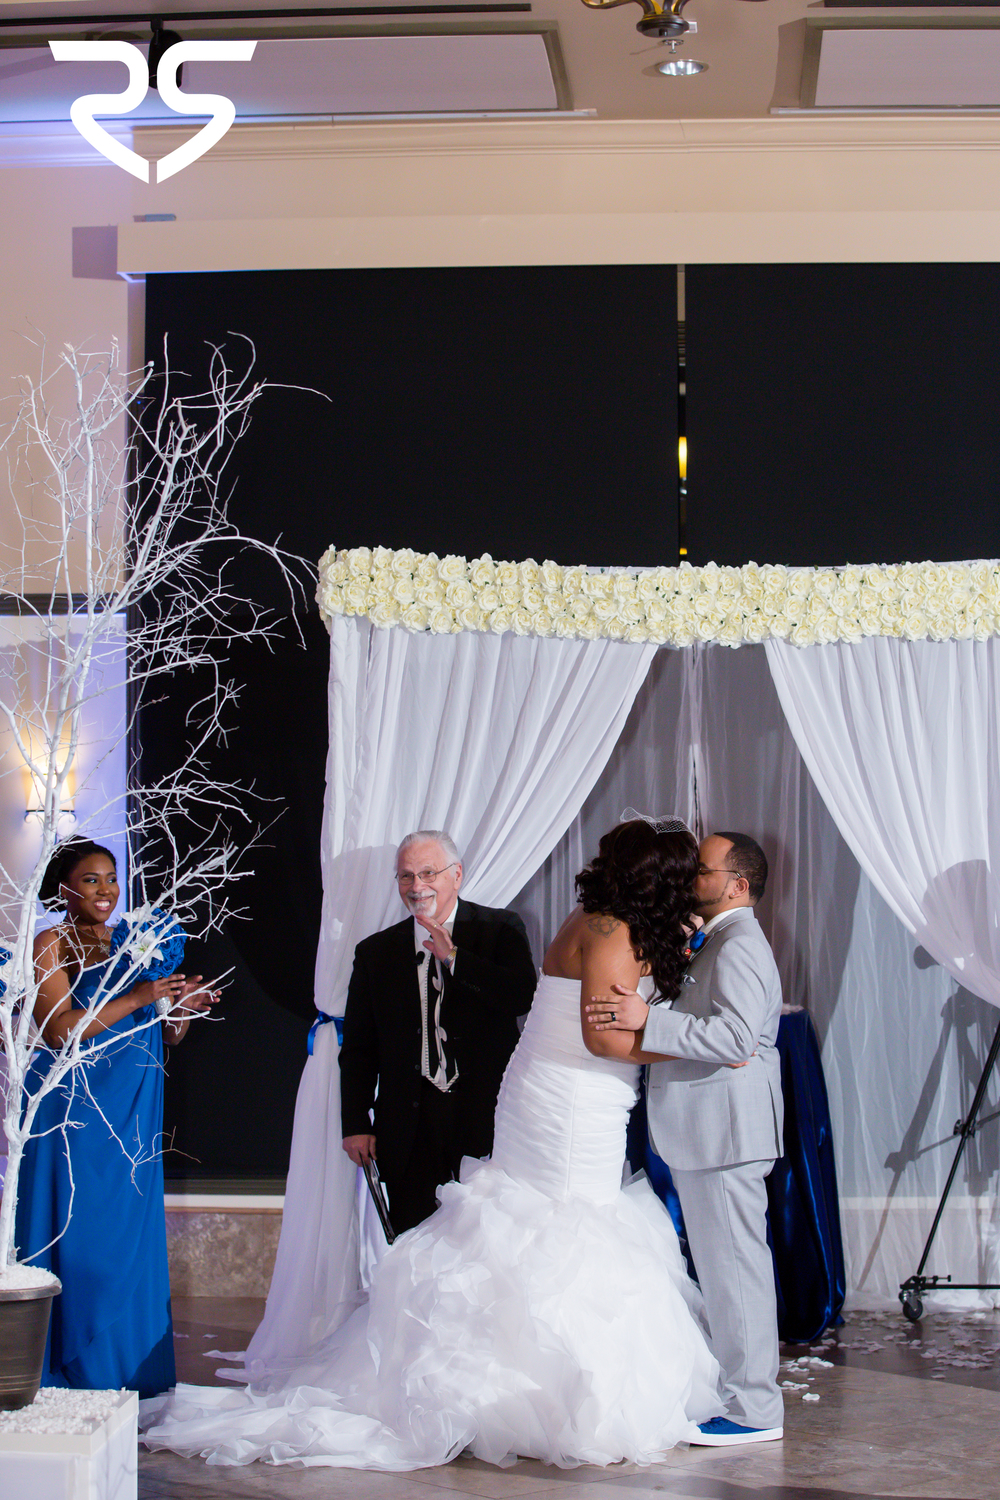 DalllasWeddingPhotographer_2016028.jpg